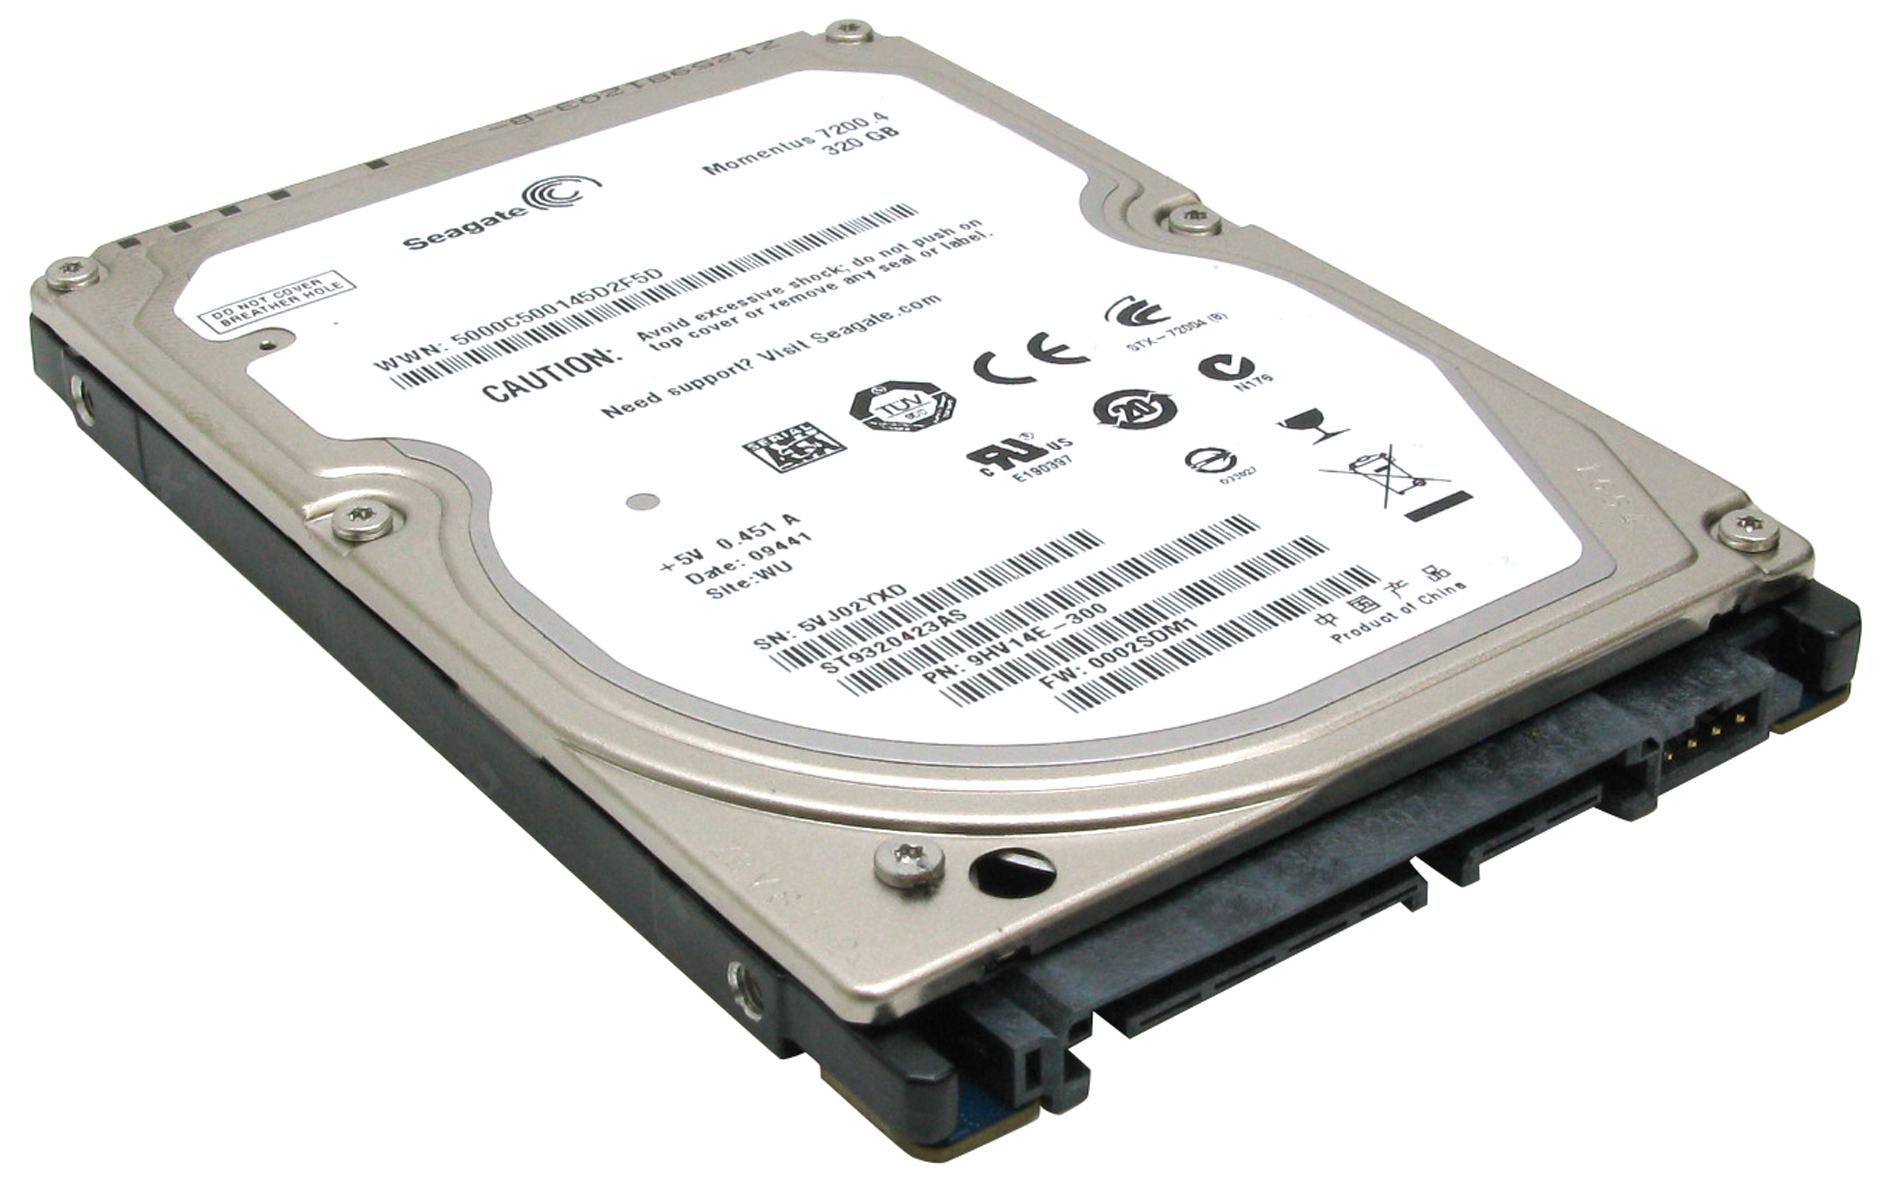 HDD 320 Gb SATA-II 300 Seagate Momentus 7200.4 ST9320423AS 2.5 7200 rpm 16Mb